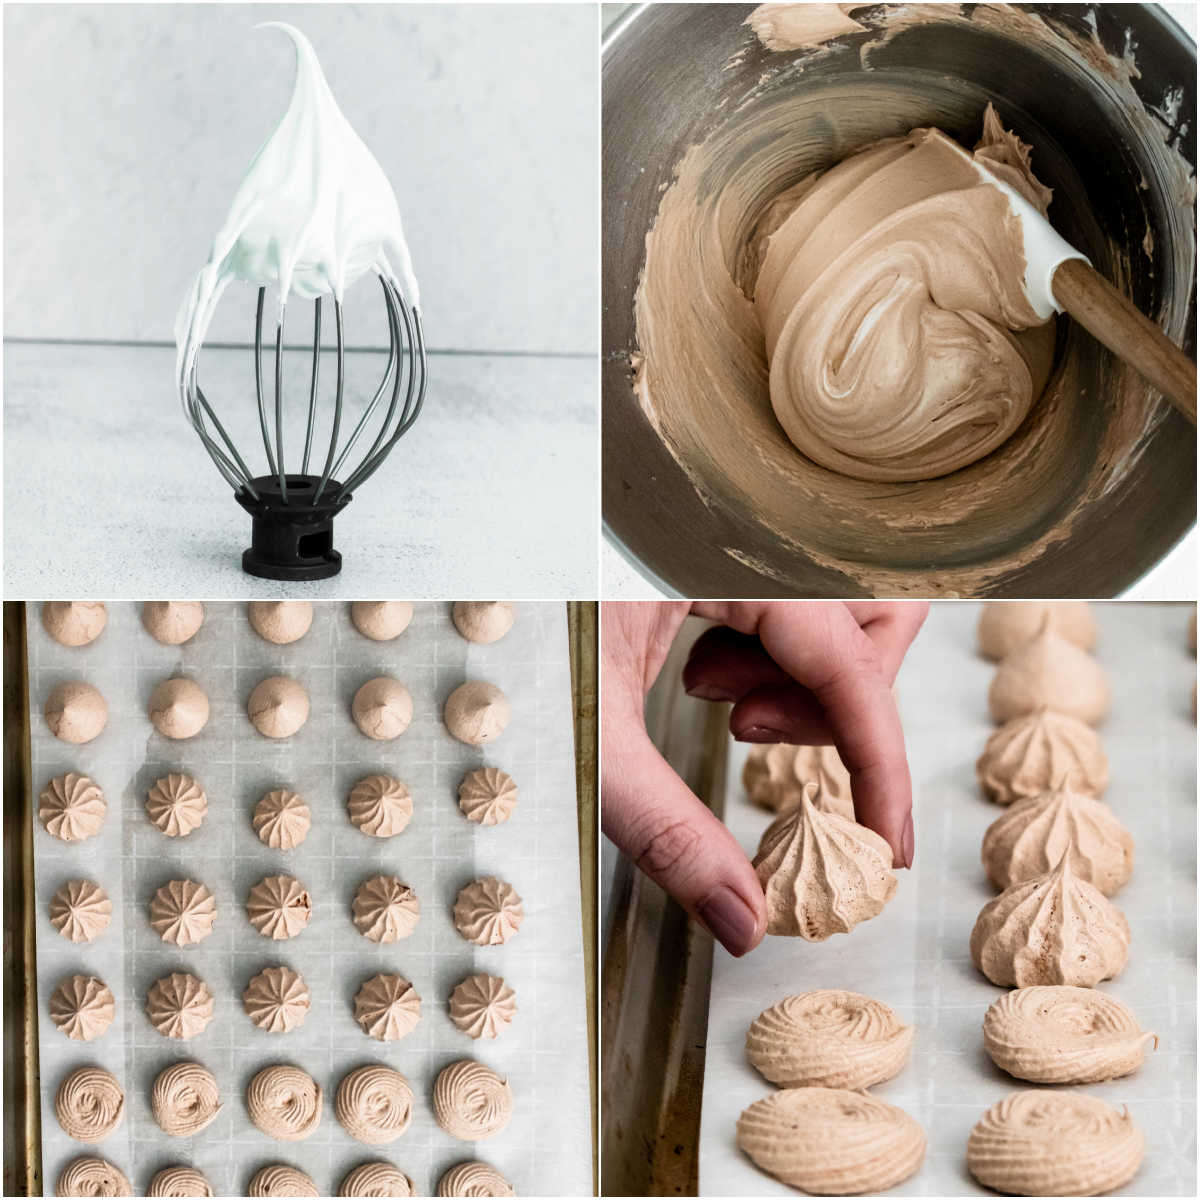 A picture collage of how to make Chocolate Meringues.